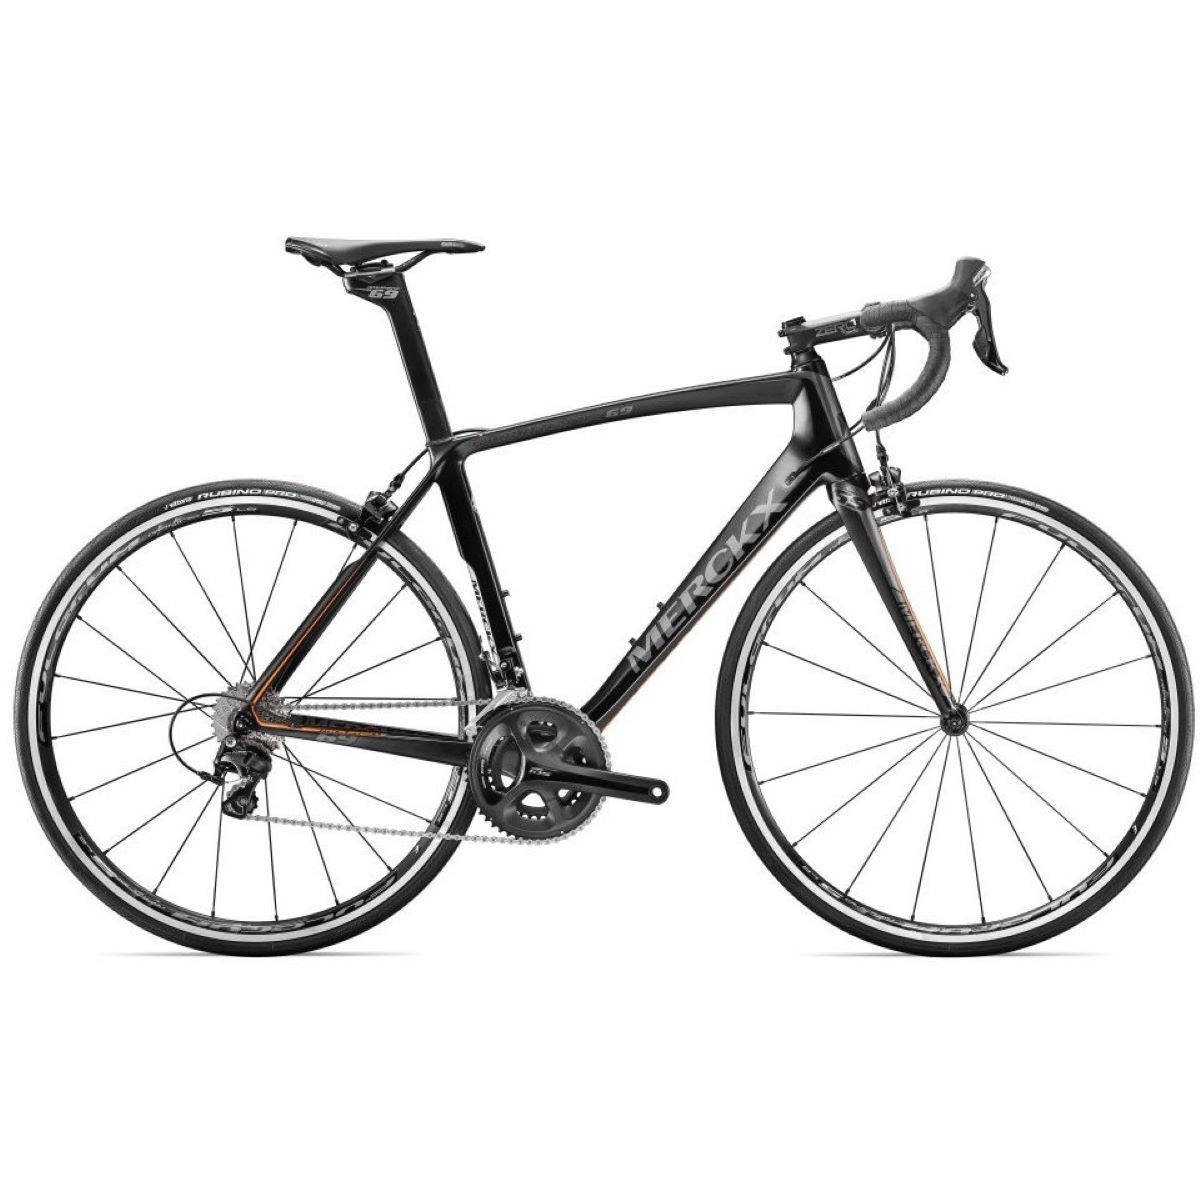 Vélo de route Eddy Merckx Mourenx 69 (105, 2017) - S Stock Bike